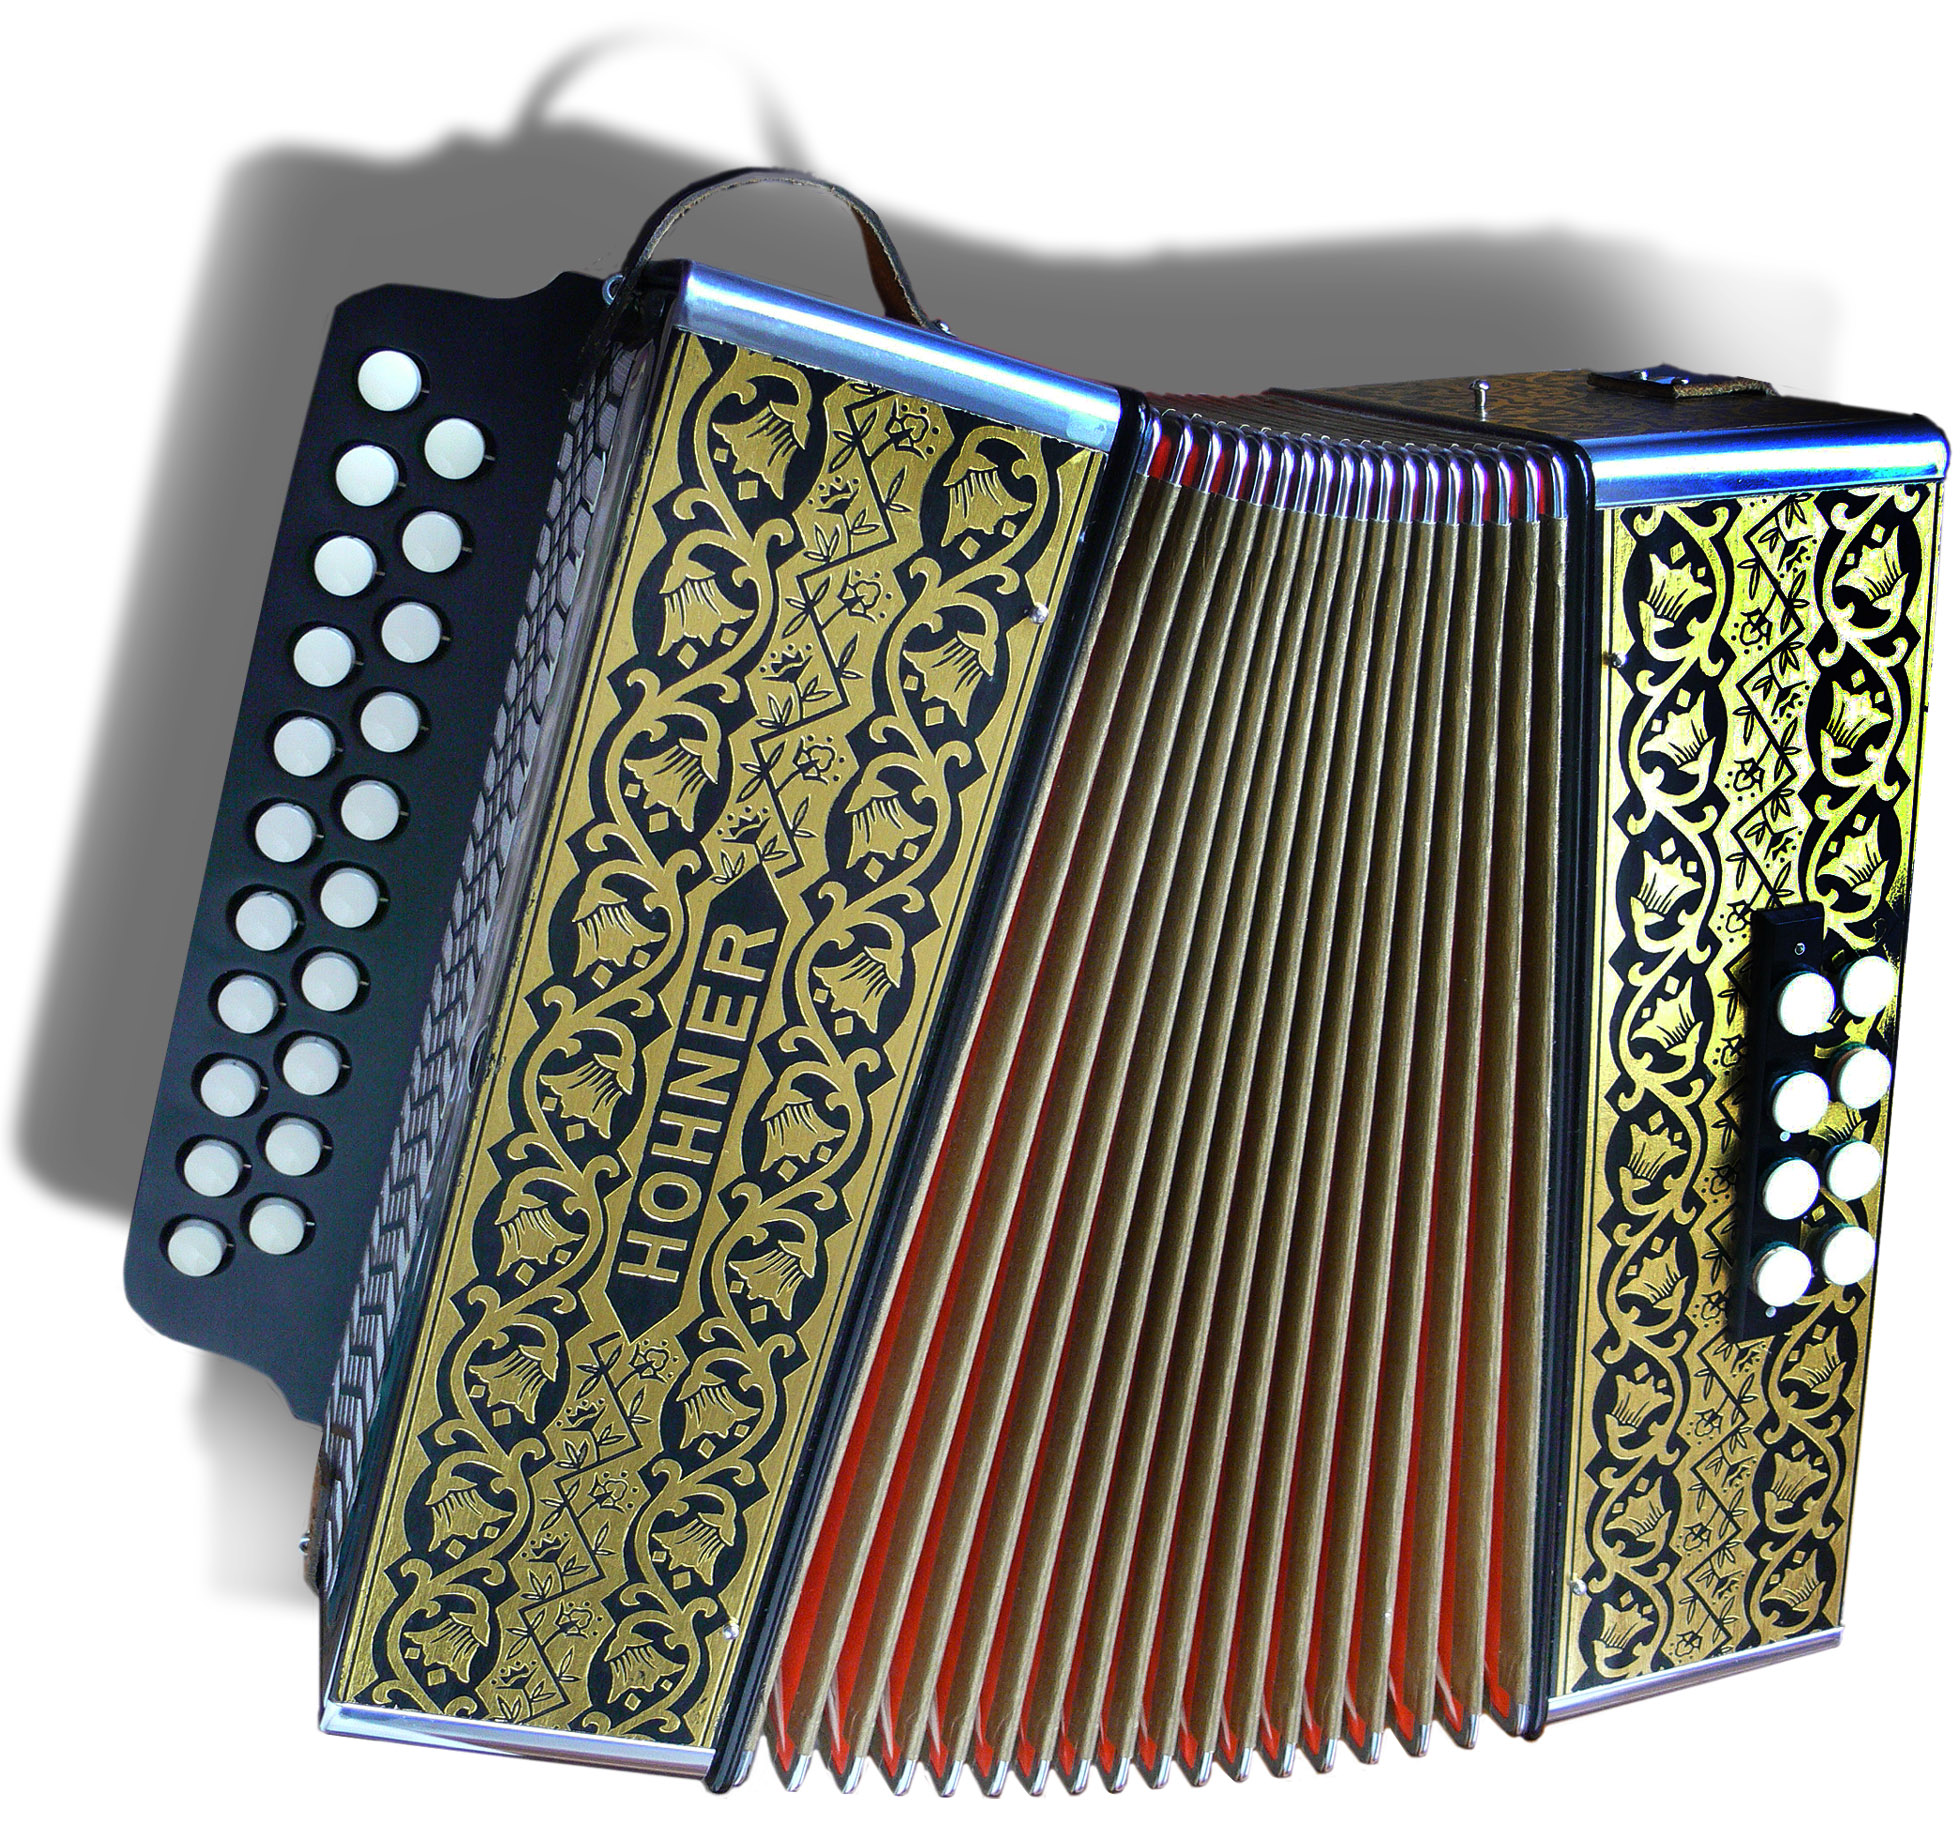 diatonic button accordion wikiwand. Black Bedroom Furniture Sets. Home Design Ideas